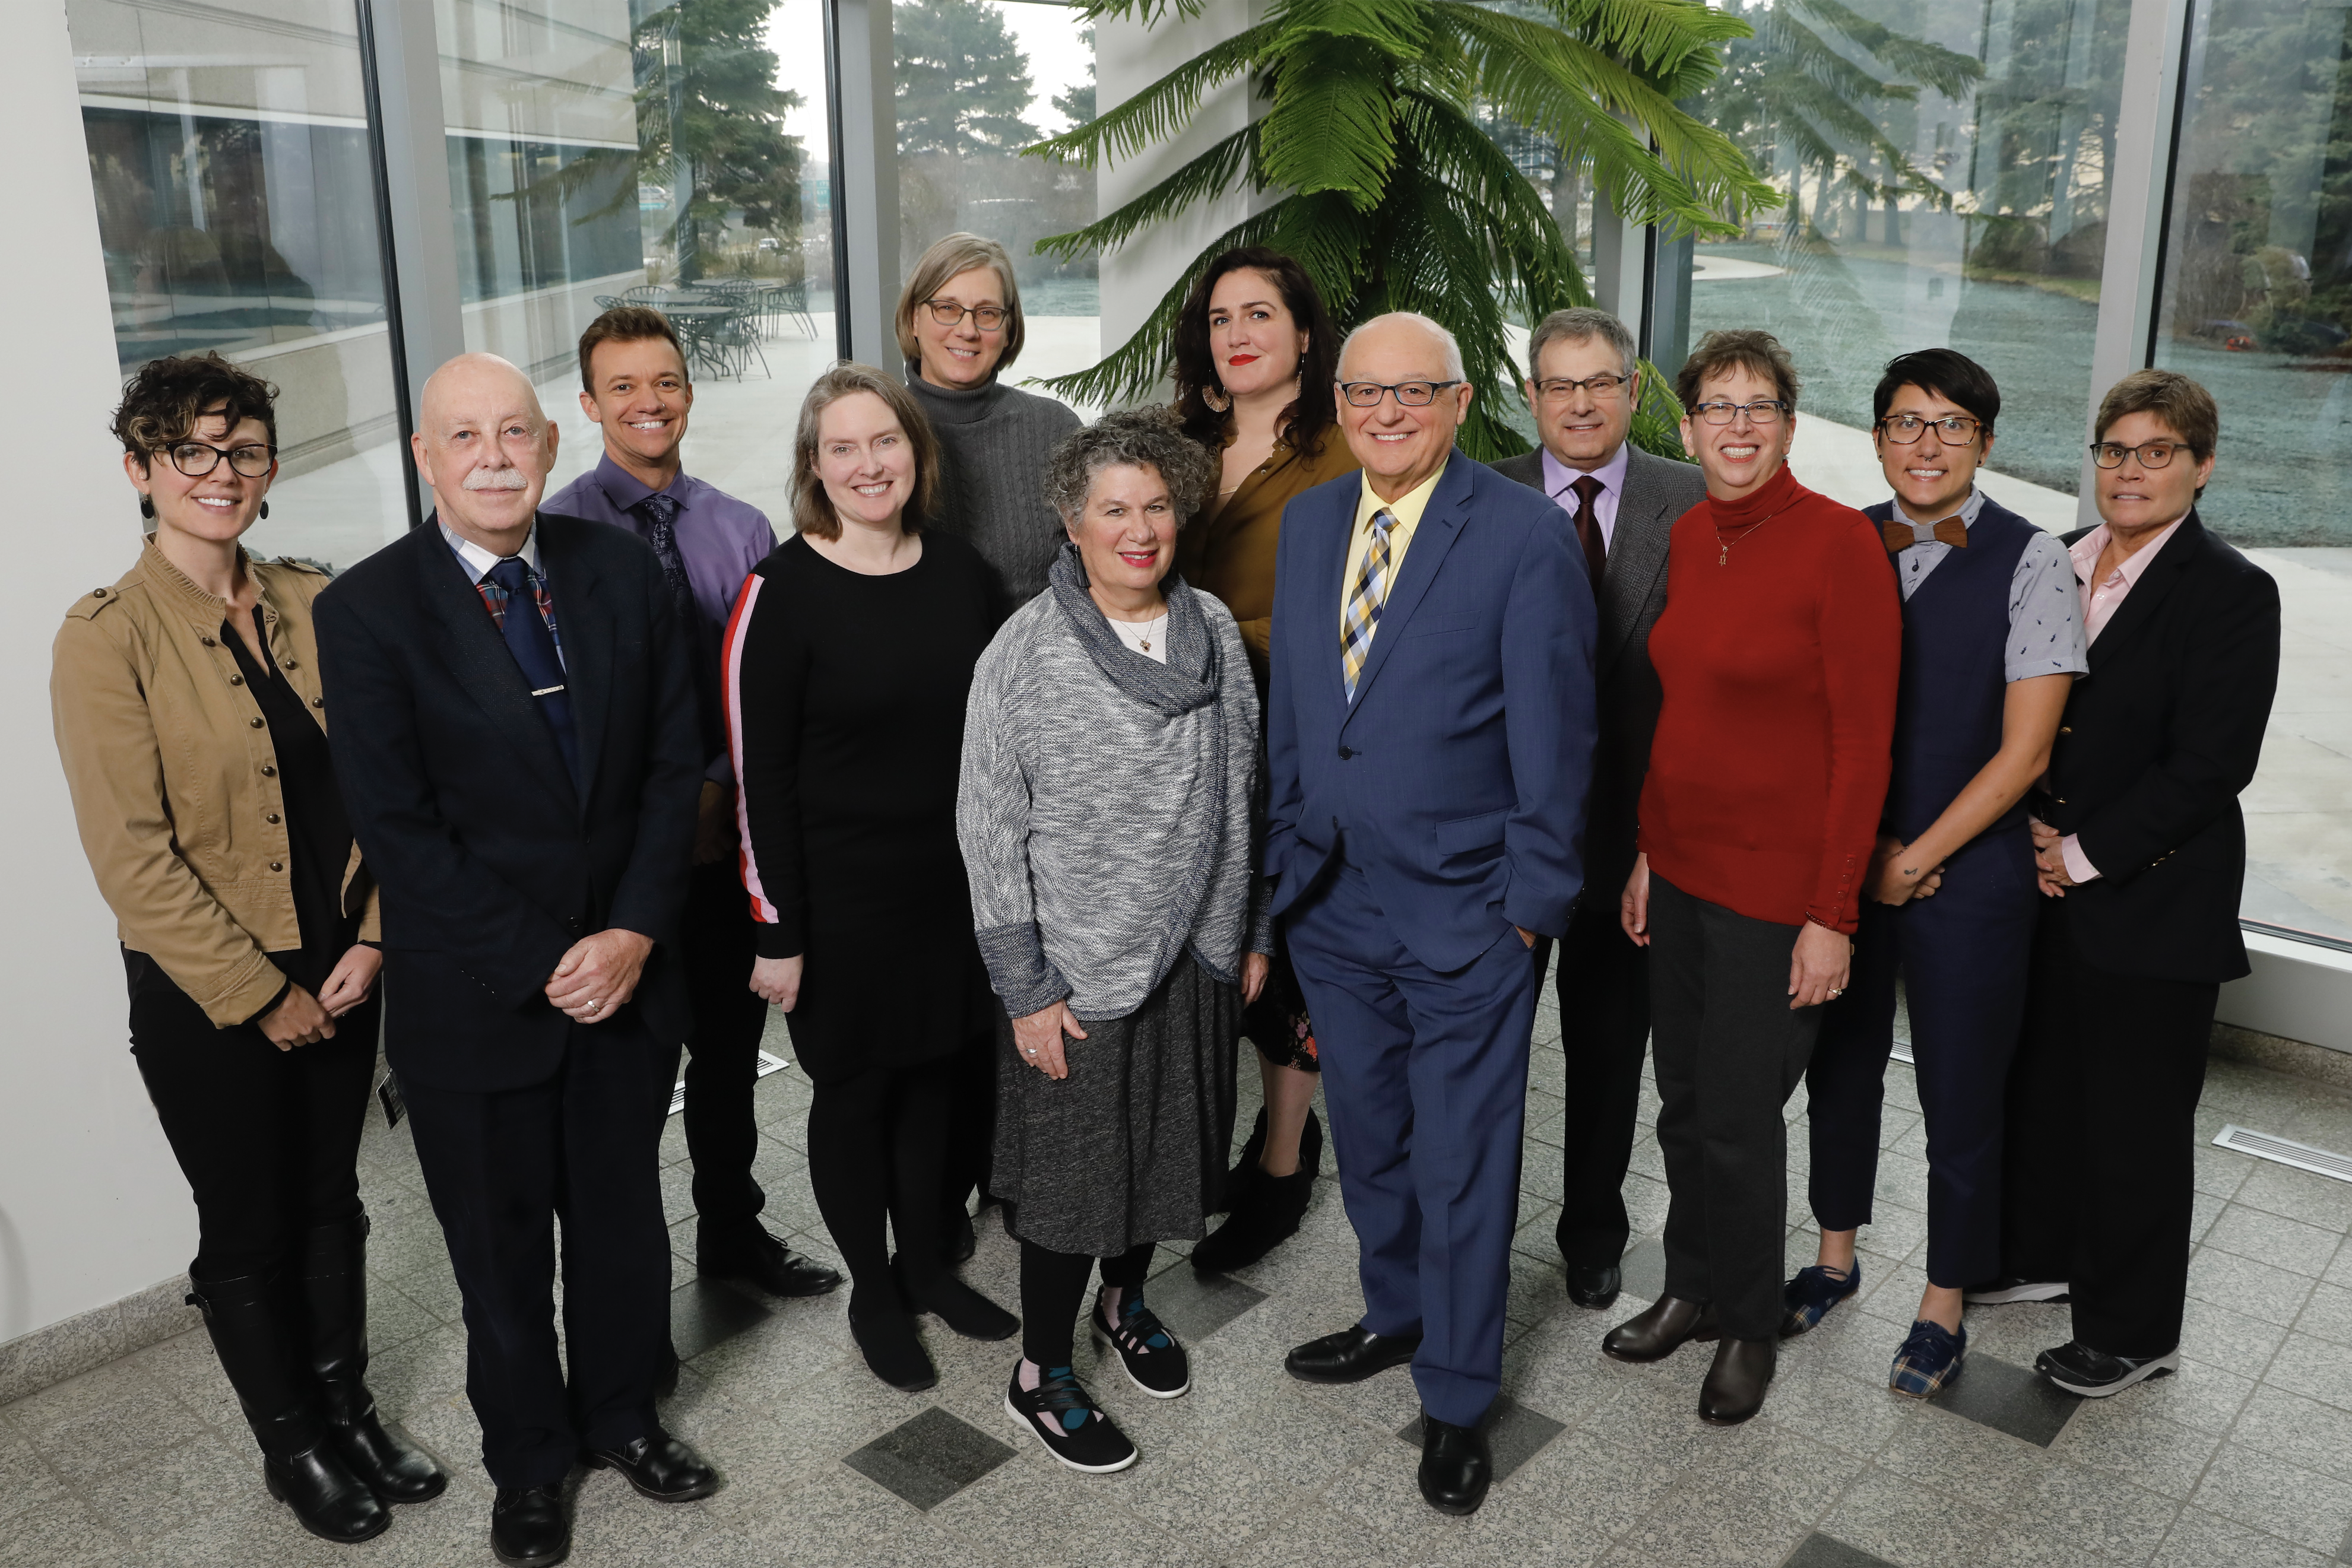 A group photo of the faculty in the Institute for Sexual and Gender Health